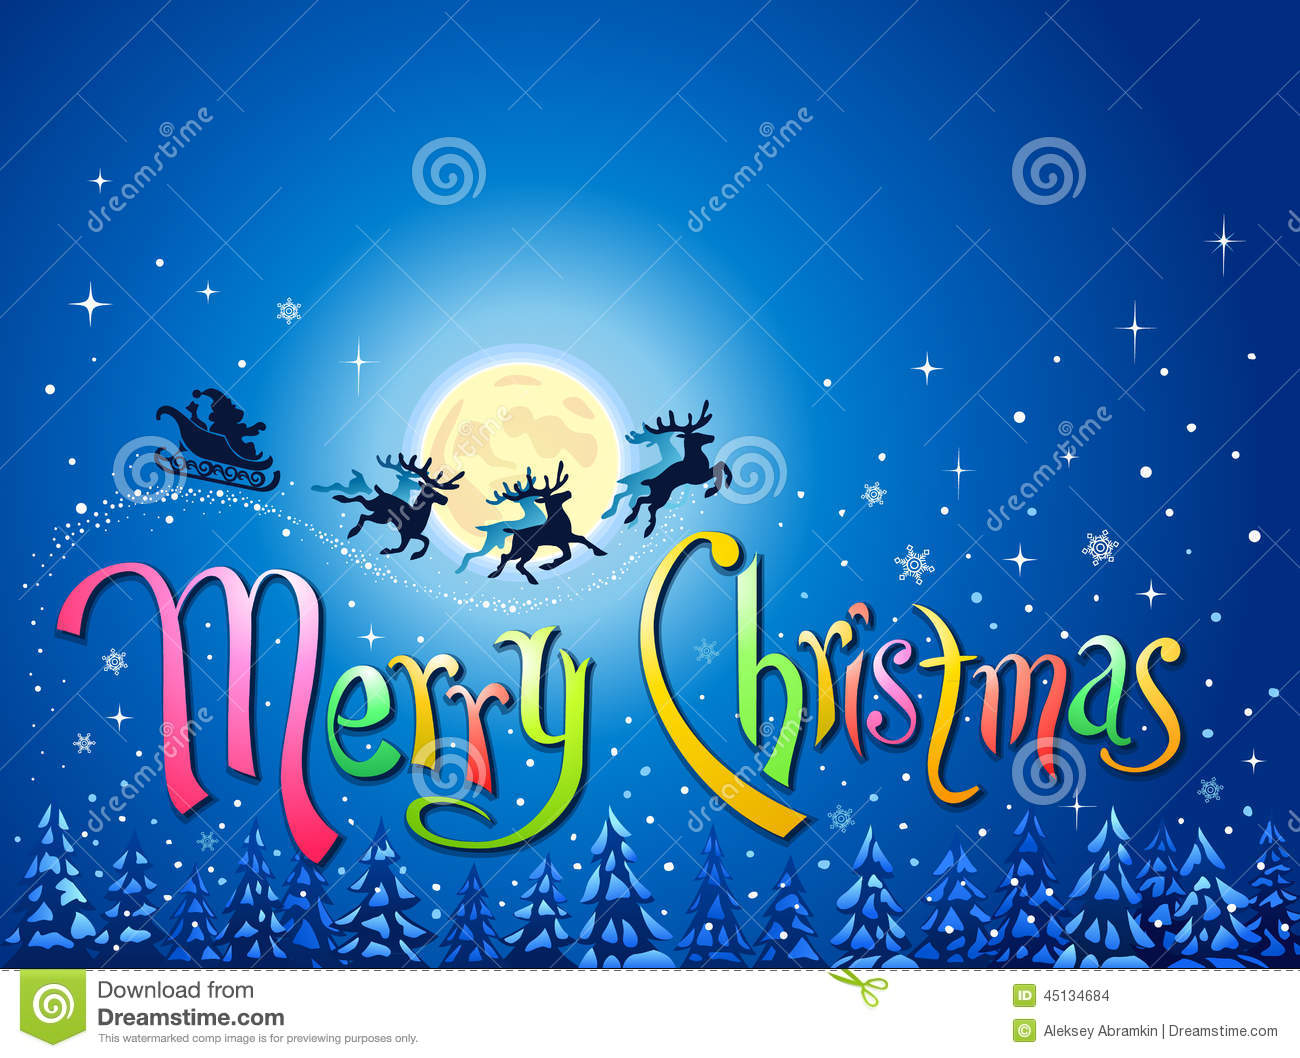 Santa In Sleigh With Reindeer Silhouettes Flying In Blue Sky With Stars And  Snowflakes Over Snow Covered Pine Trees And The Words Merry Christmas.